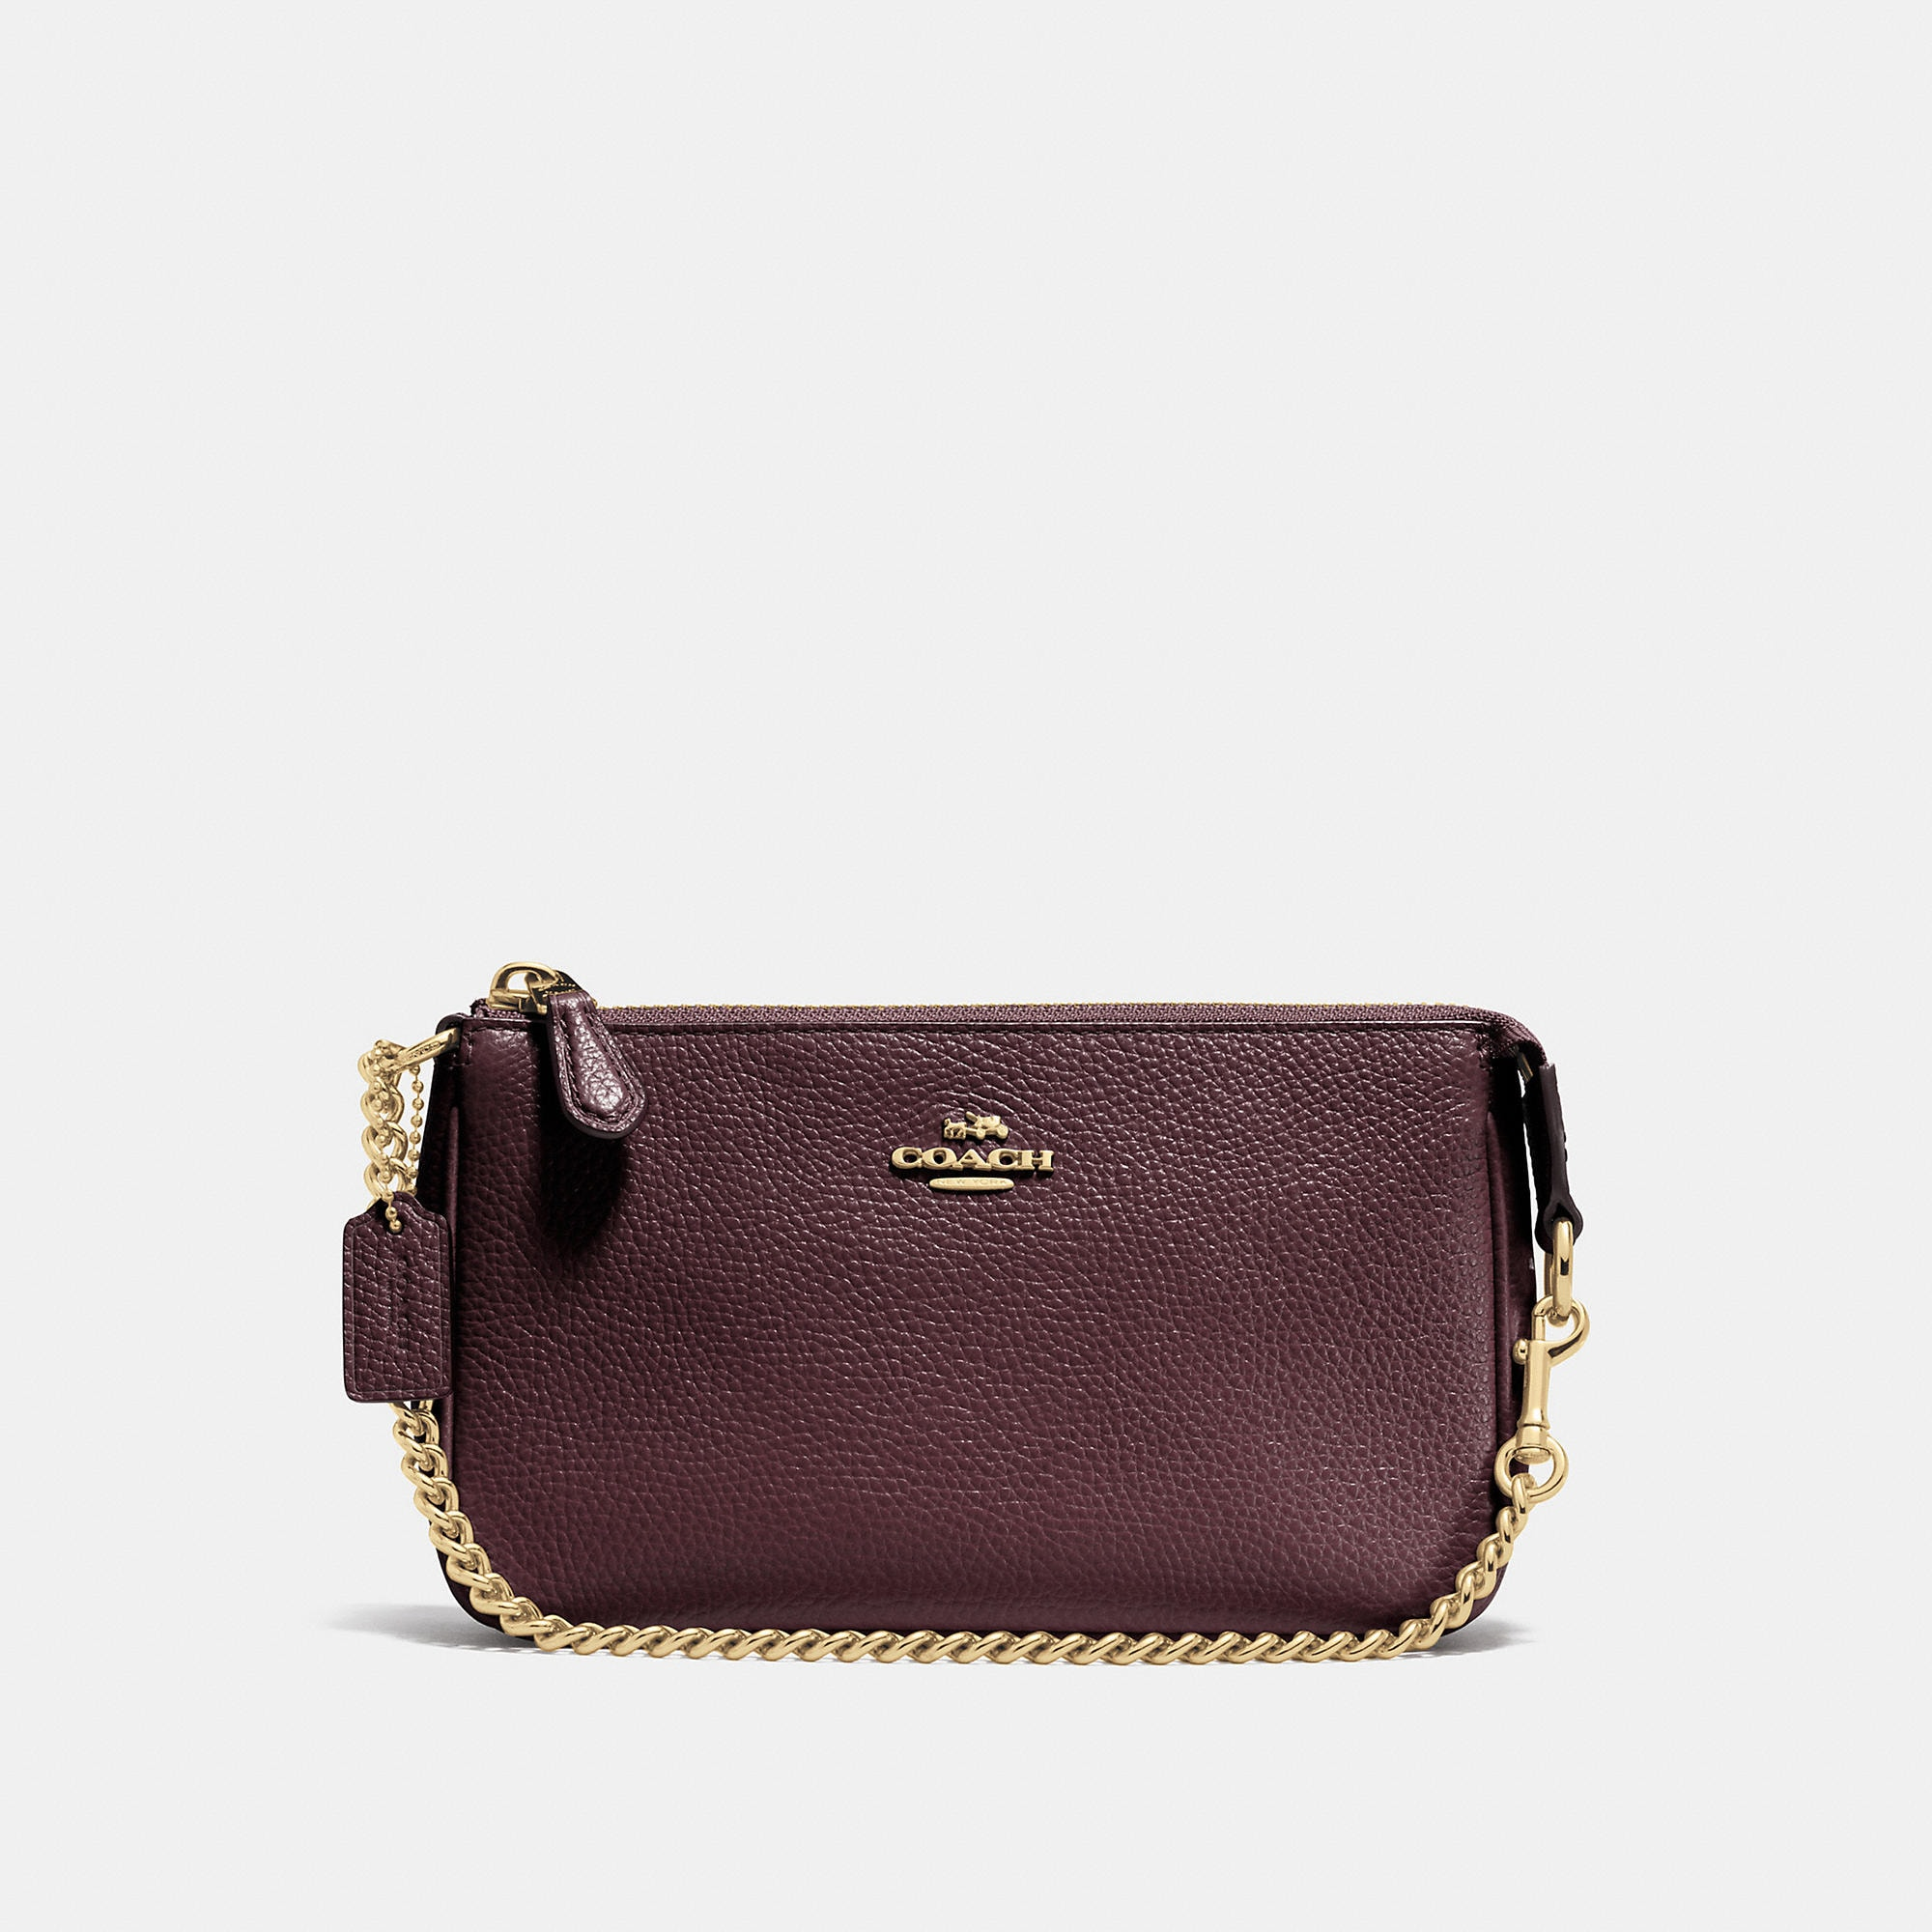 Coach Nolita Wristlet 19 In Pebble Leather